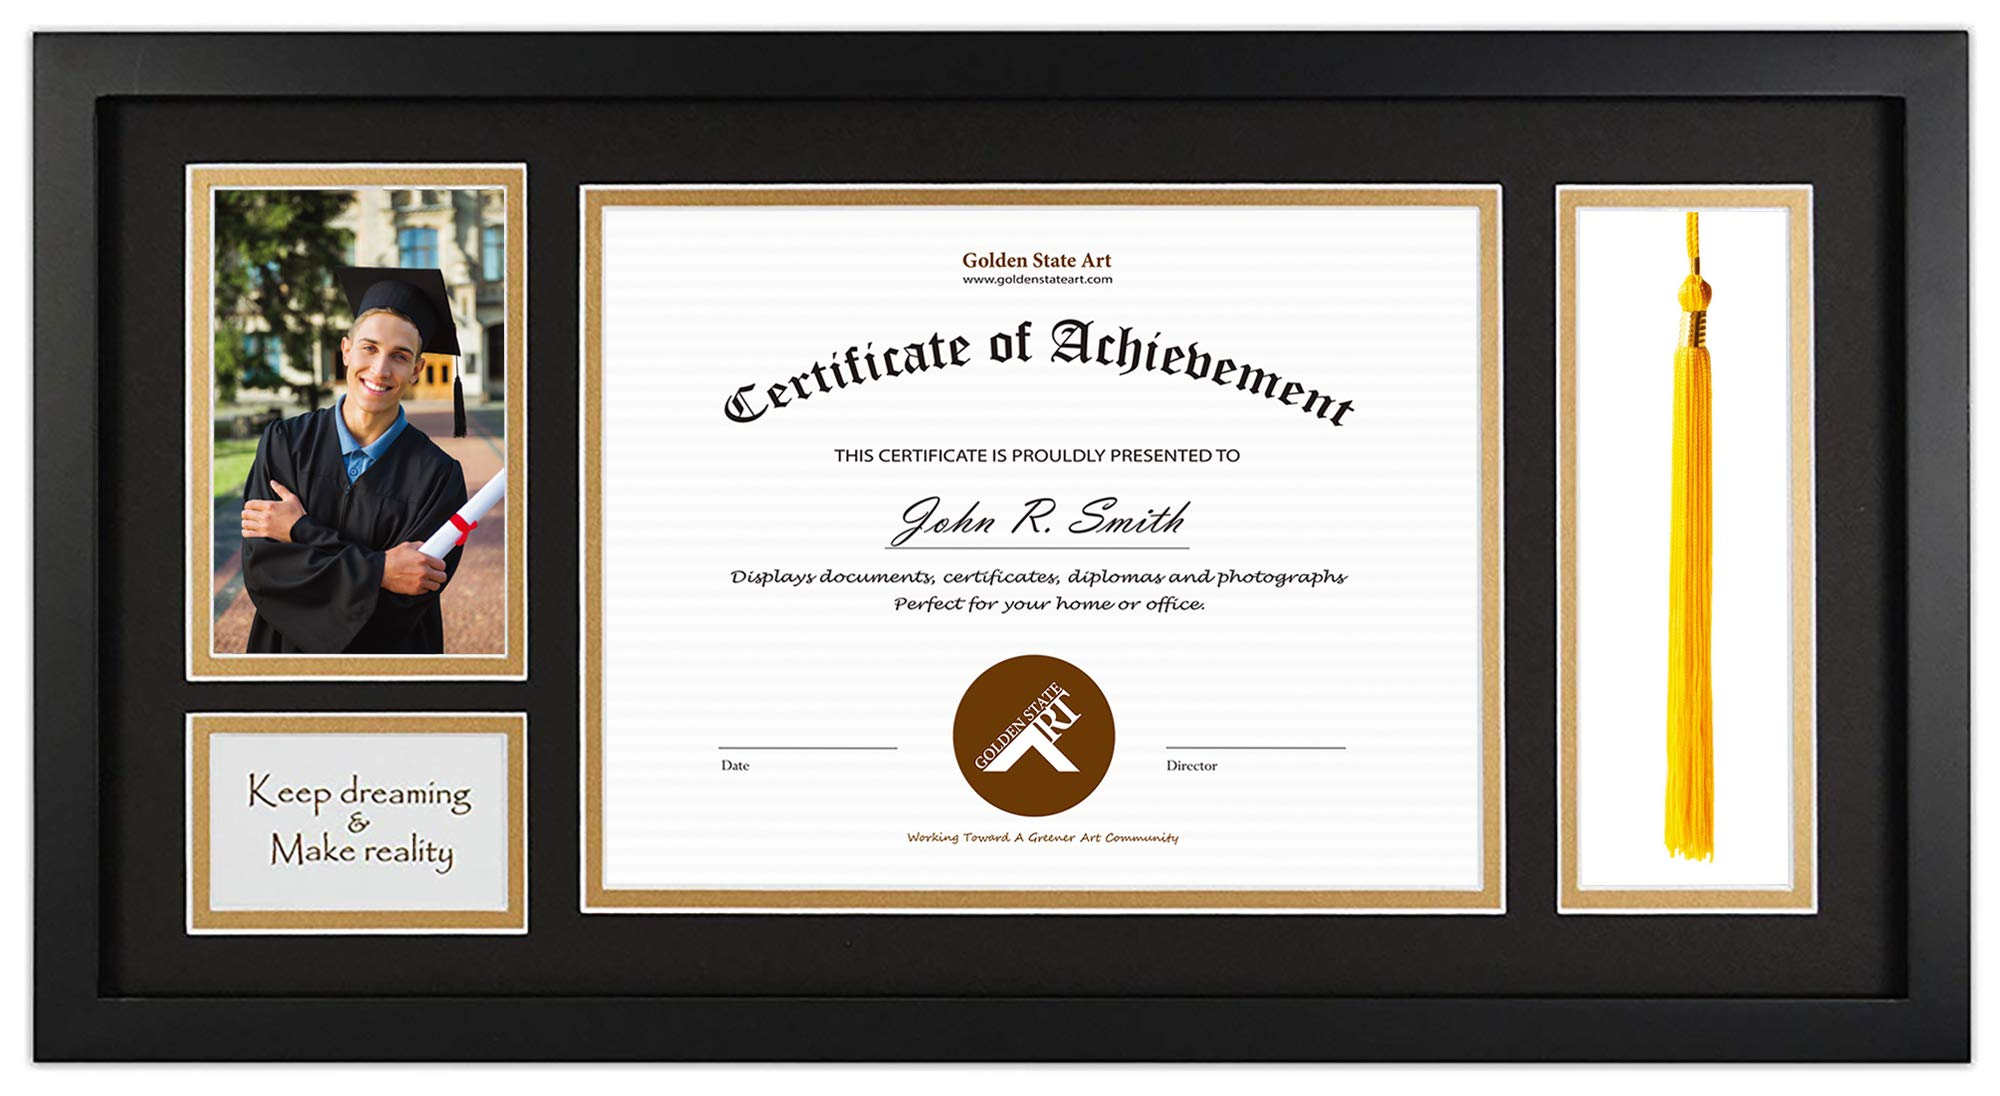 Golden State Art, Diploma Tassel Shadow Box 11x22 Frame for 8.5x11 Document/Certificate & 4x6 Photo, with Double Mat (Black Over Gold), Tassel Holder & Real Glass, Black by Golden State Art